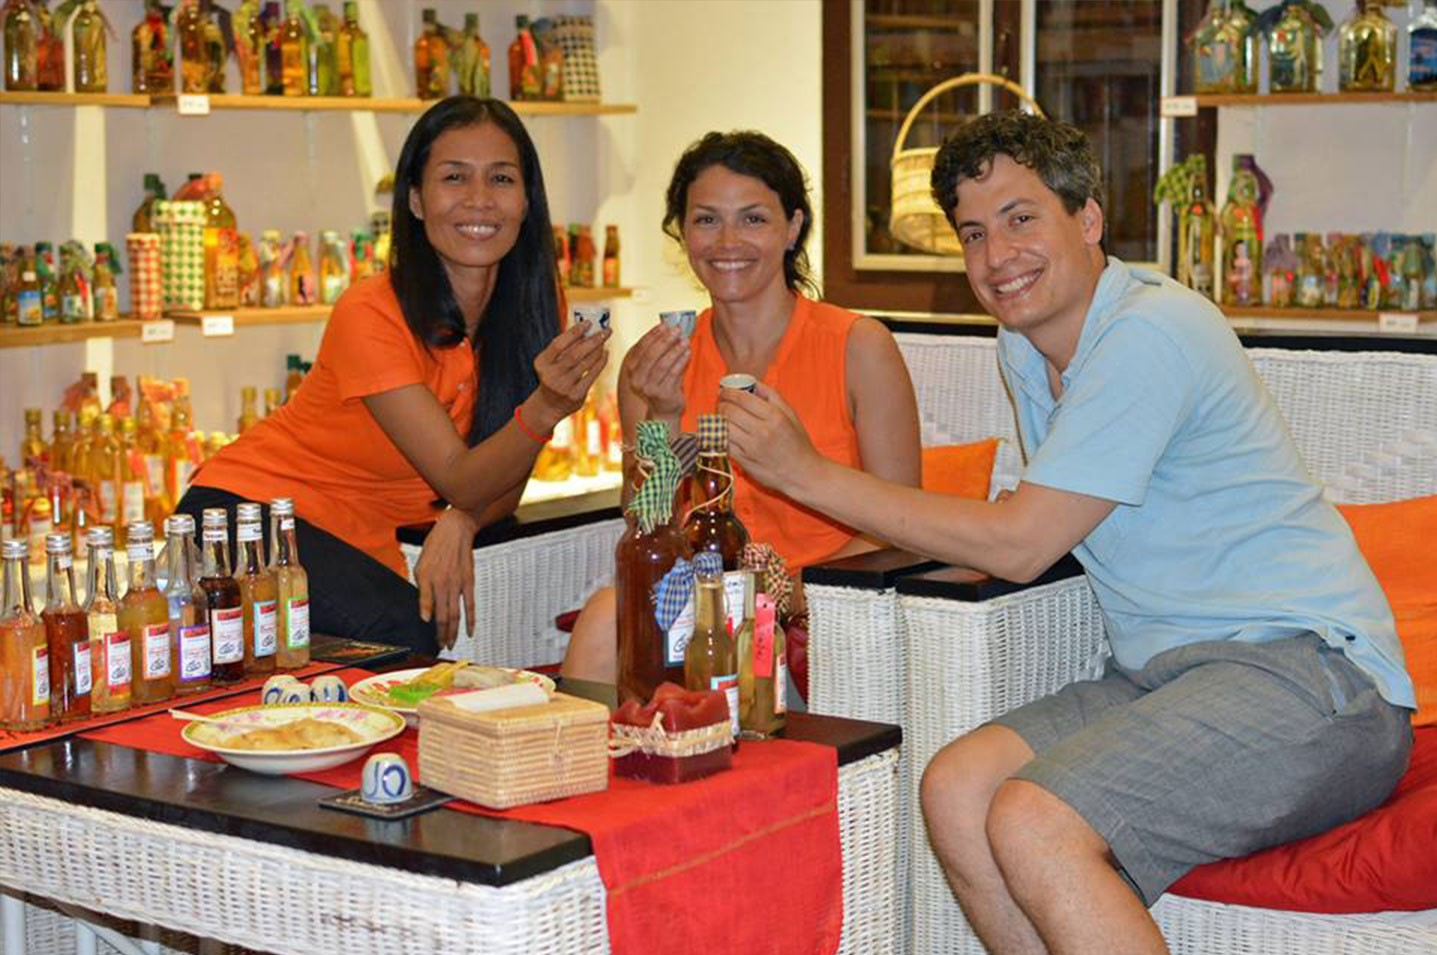 Have a Sombai tasting and choose bottles made by painting artisans Angkor Bayon Souvenirs Siem Reap